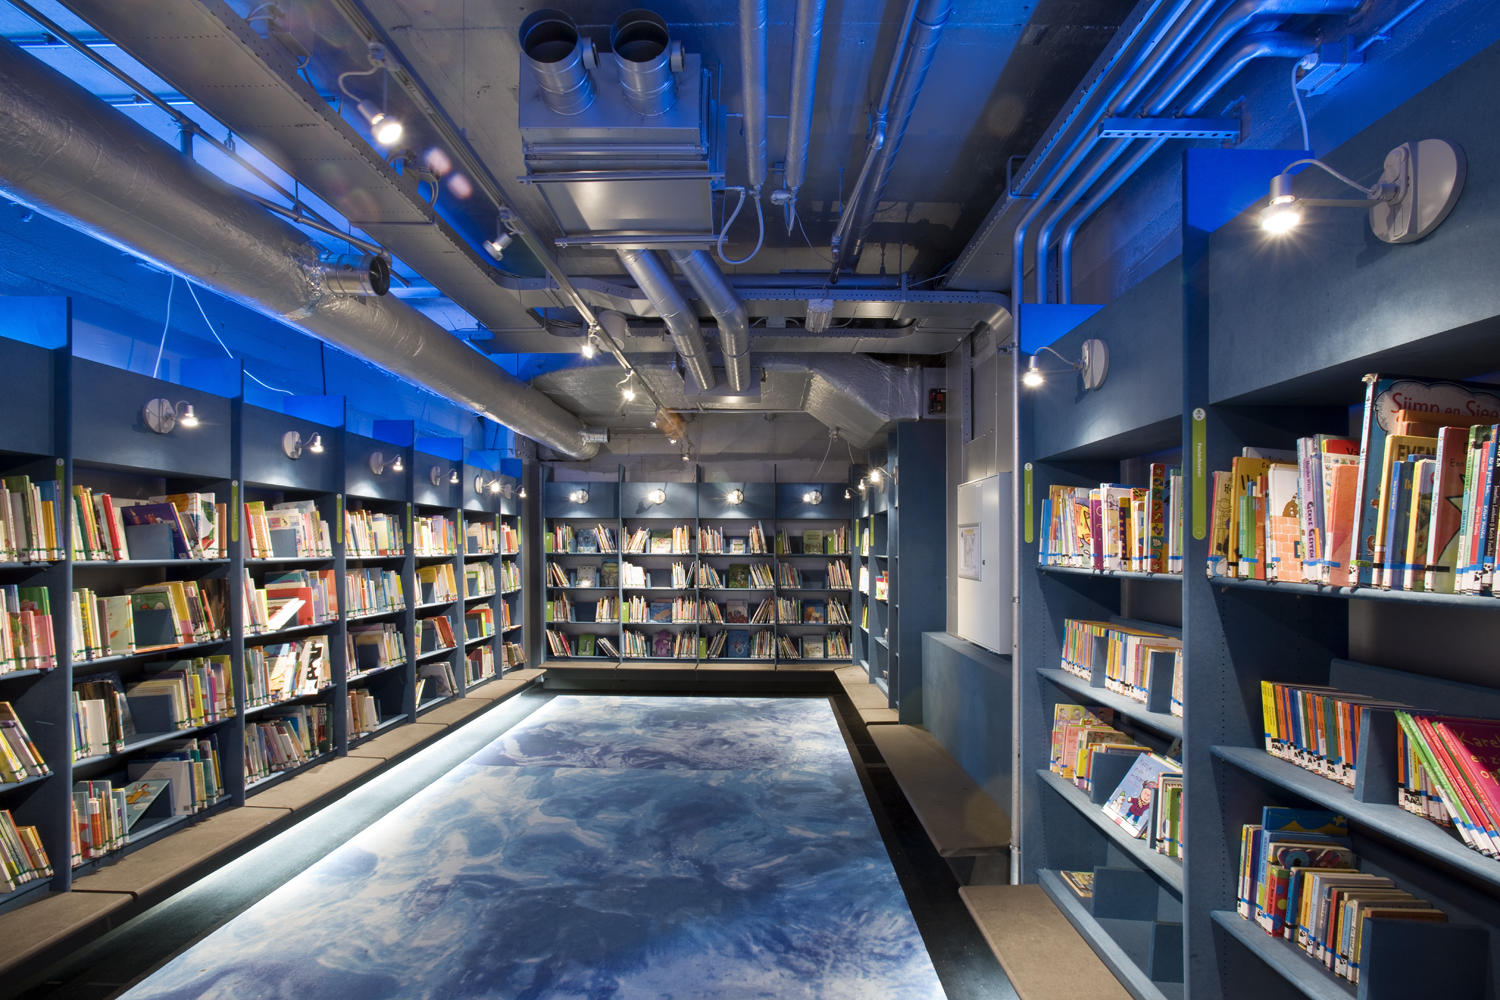 Best Interior Design Schools >> Media library, Delft